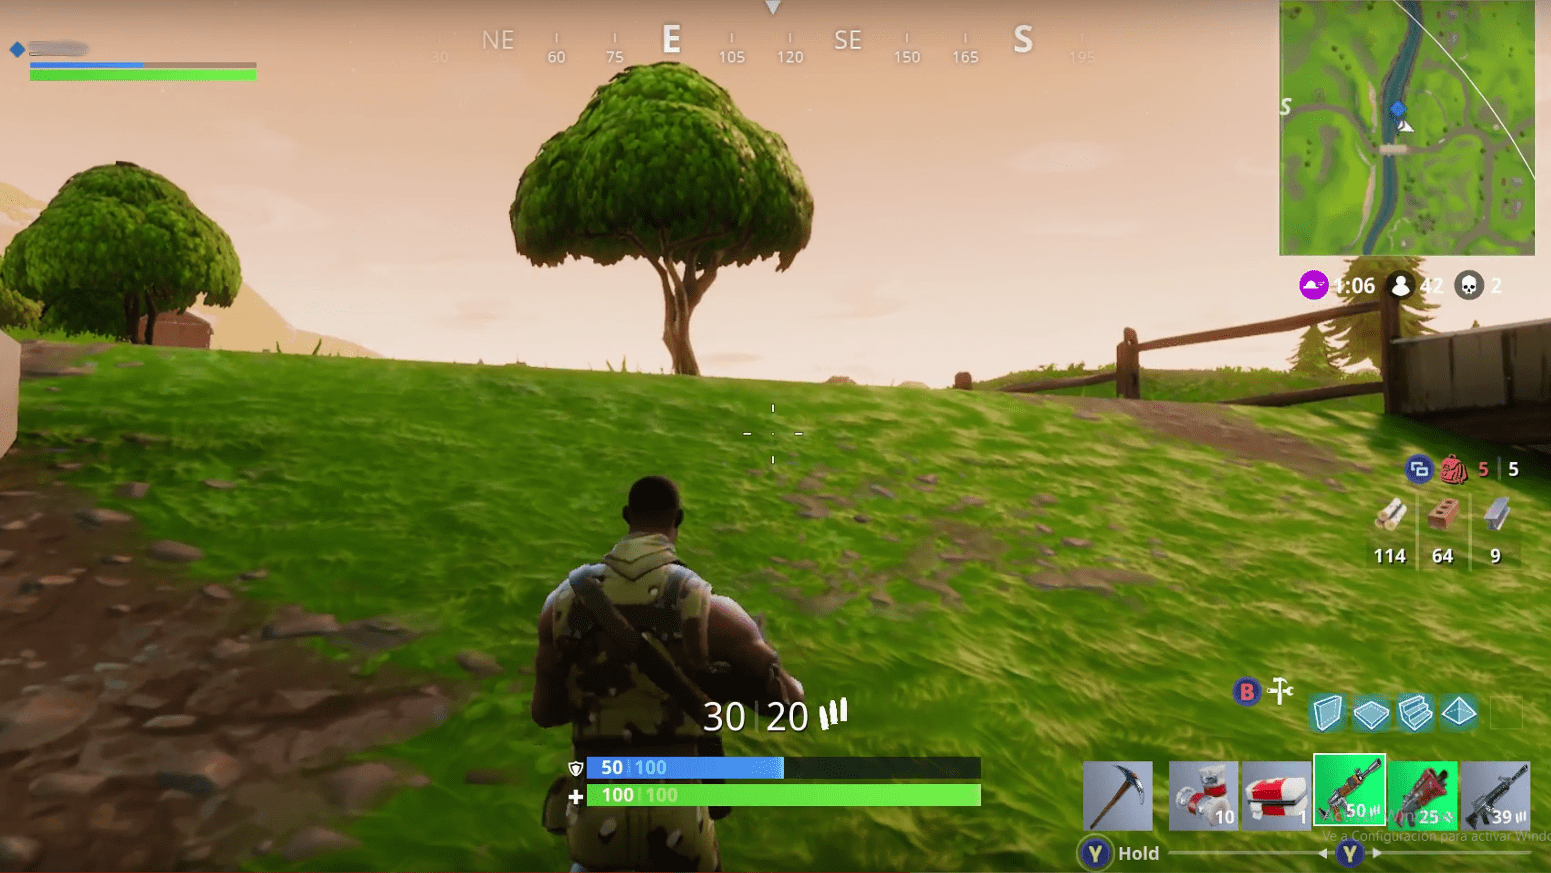 árbol manzana Fortnite